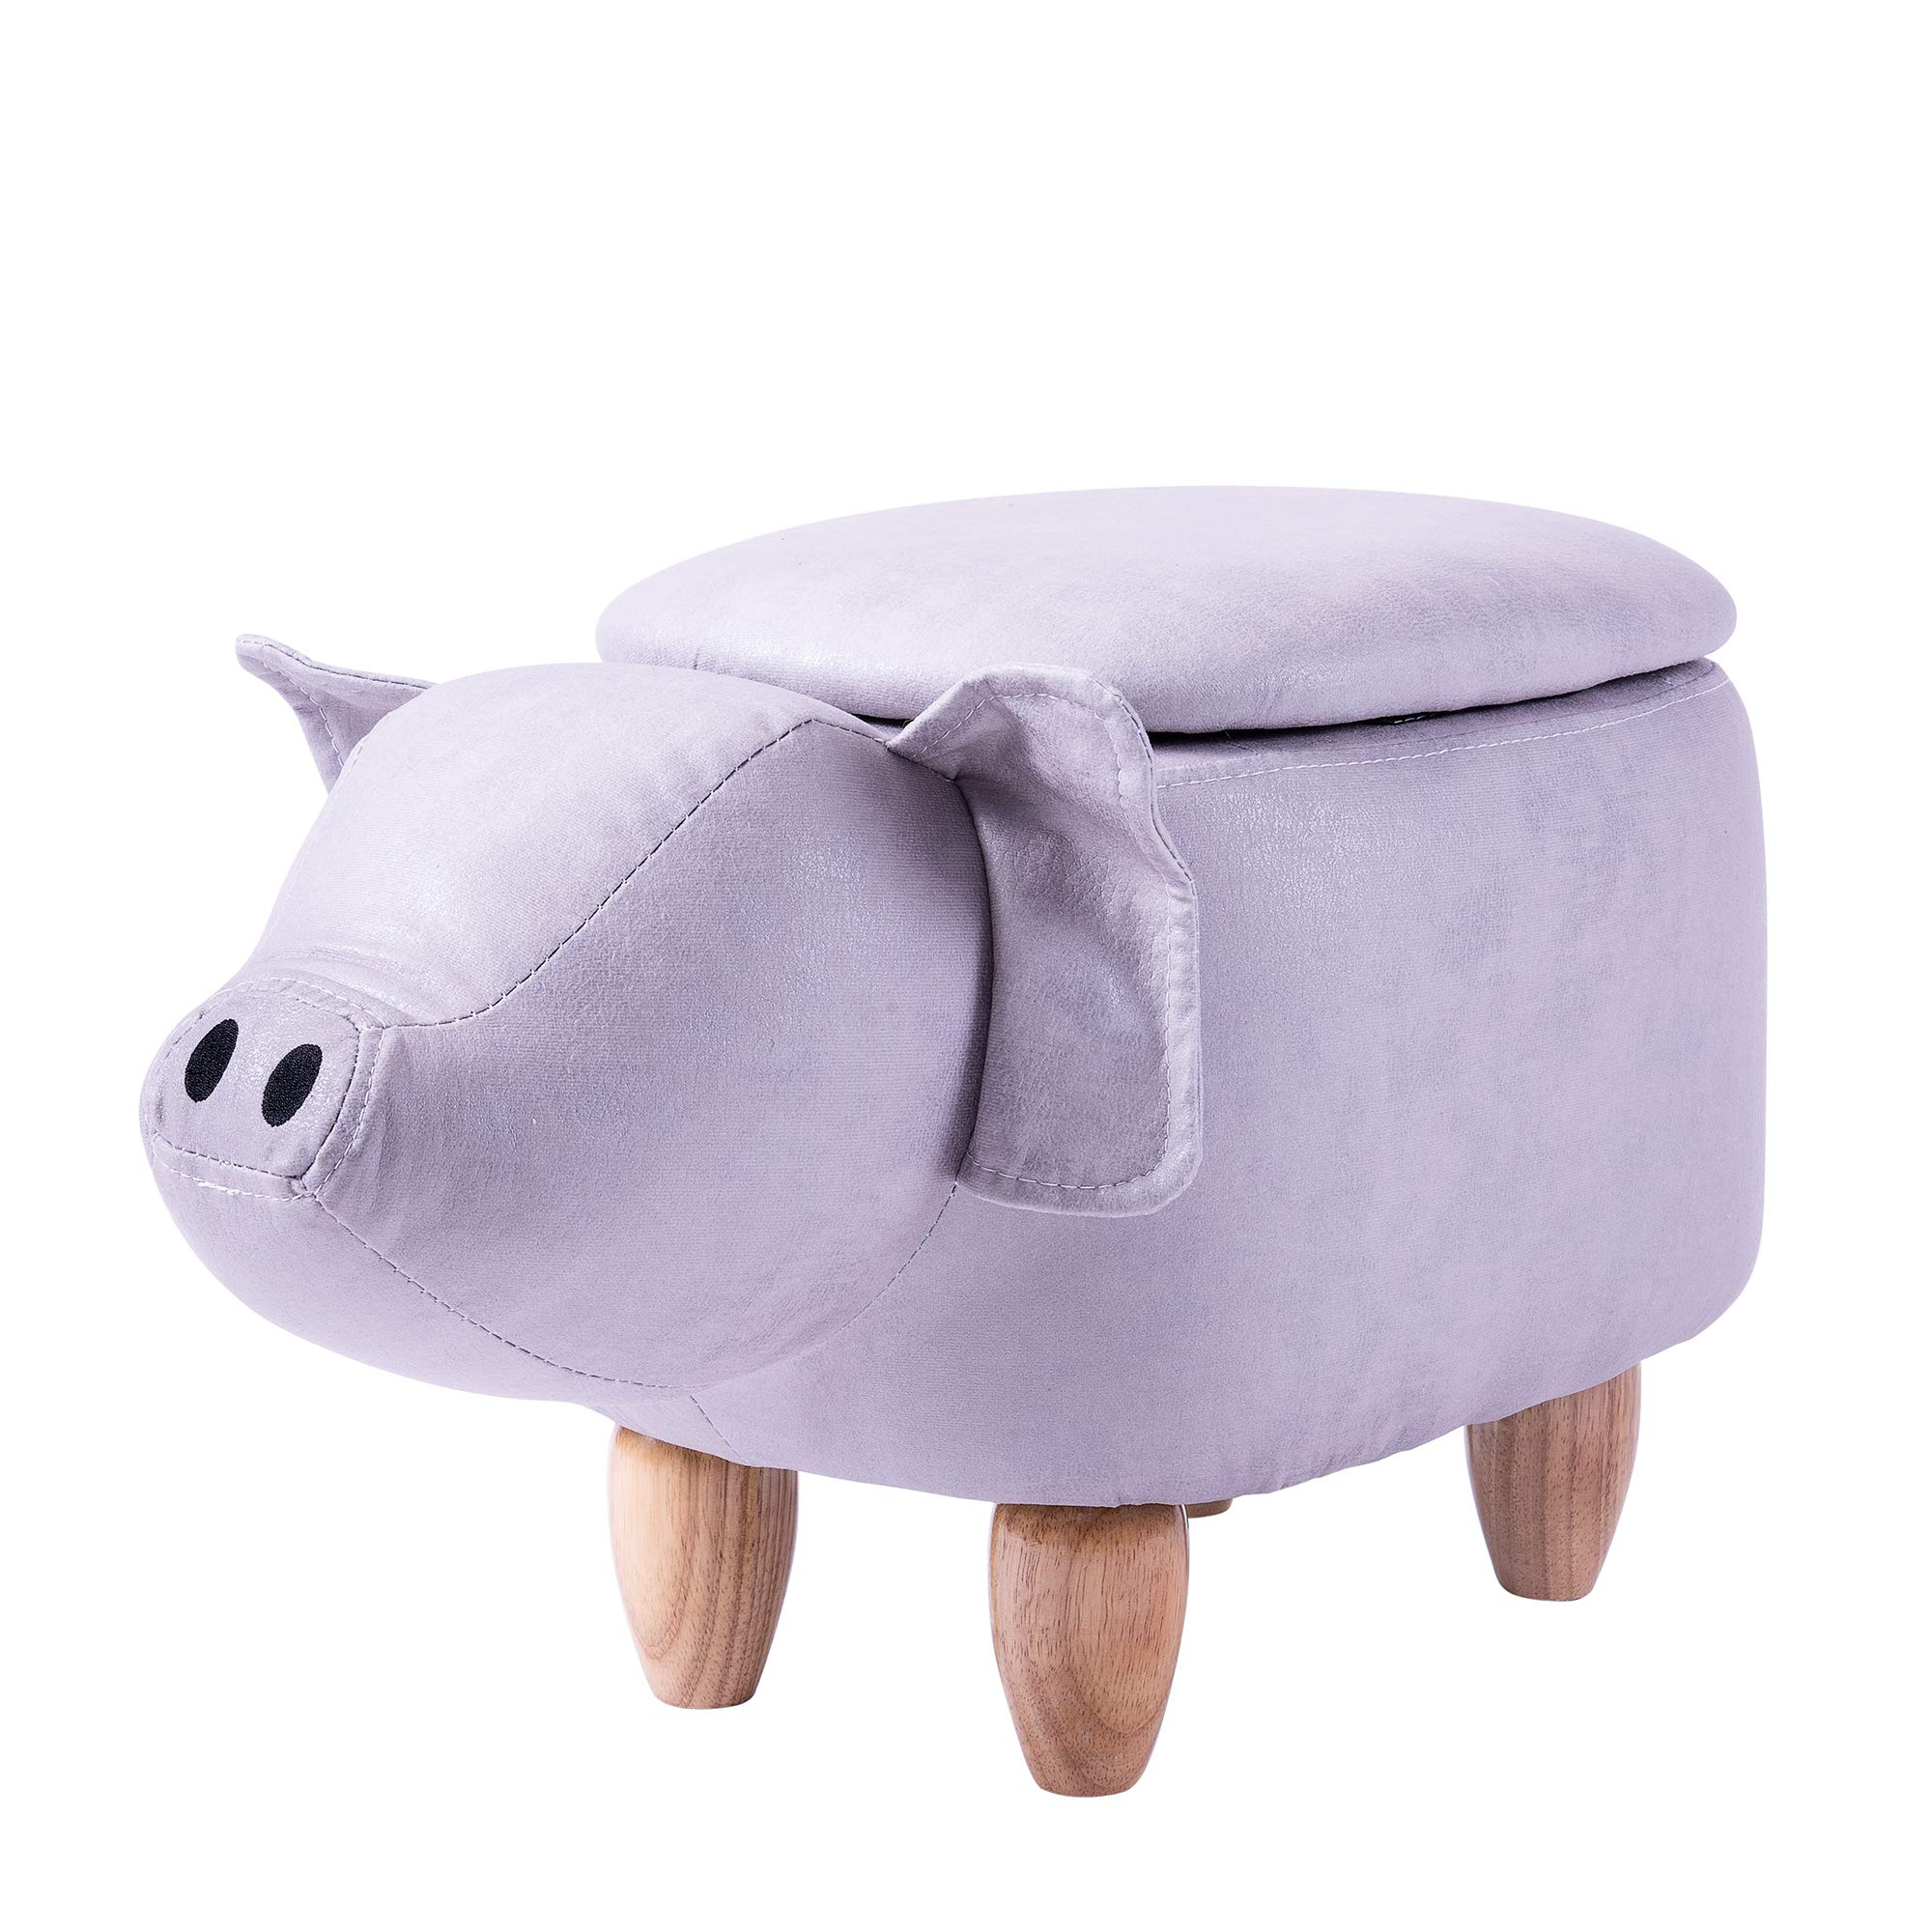 MIBOW Ottoman Funfair Series Upholstered Ride-on Storage Ottoman Footrest Stool with Animal Shape by MIBOW